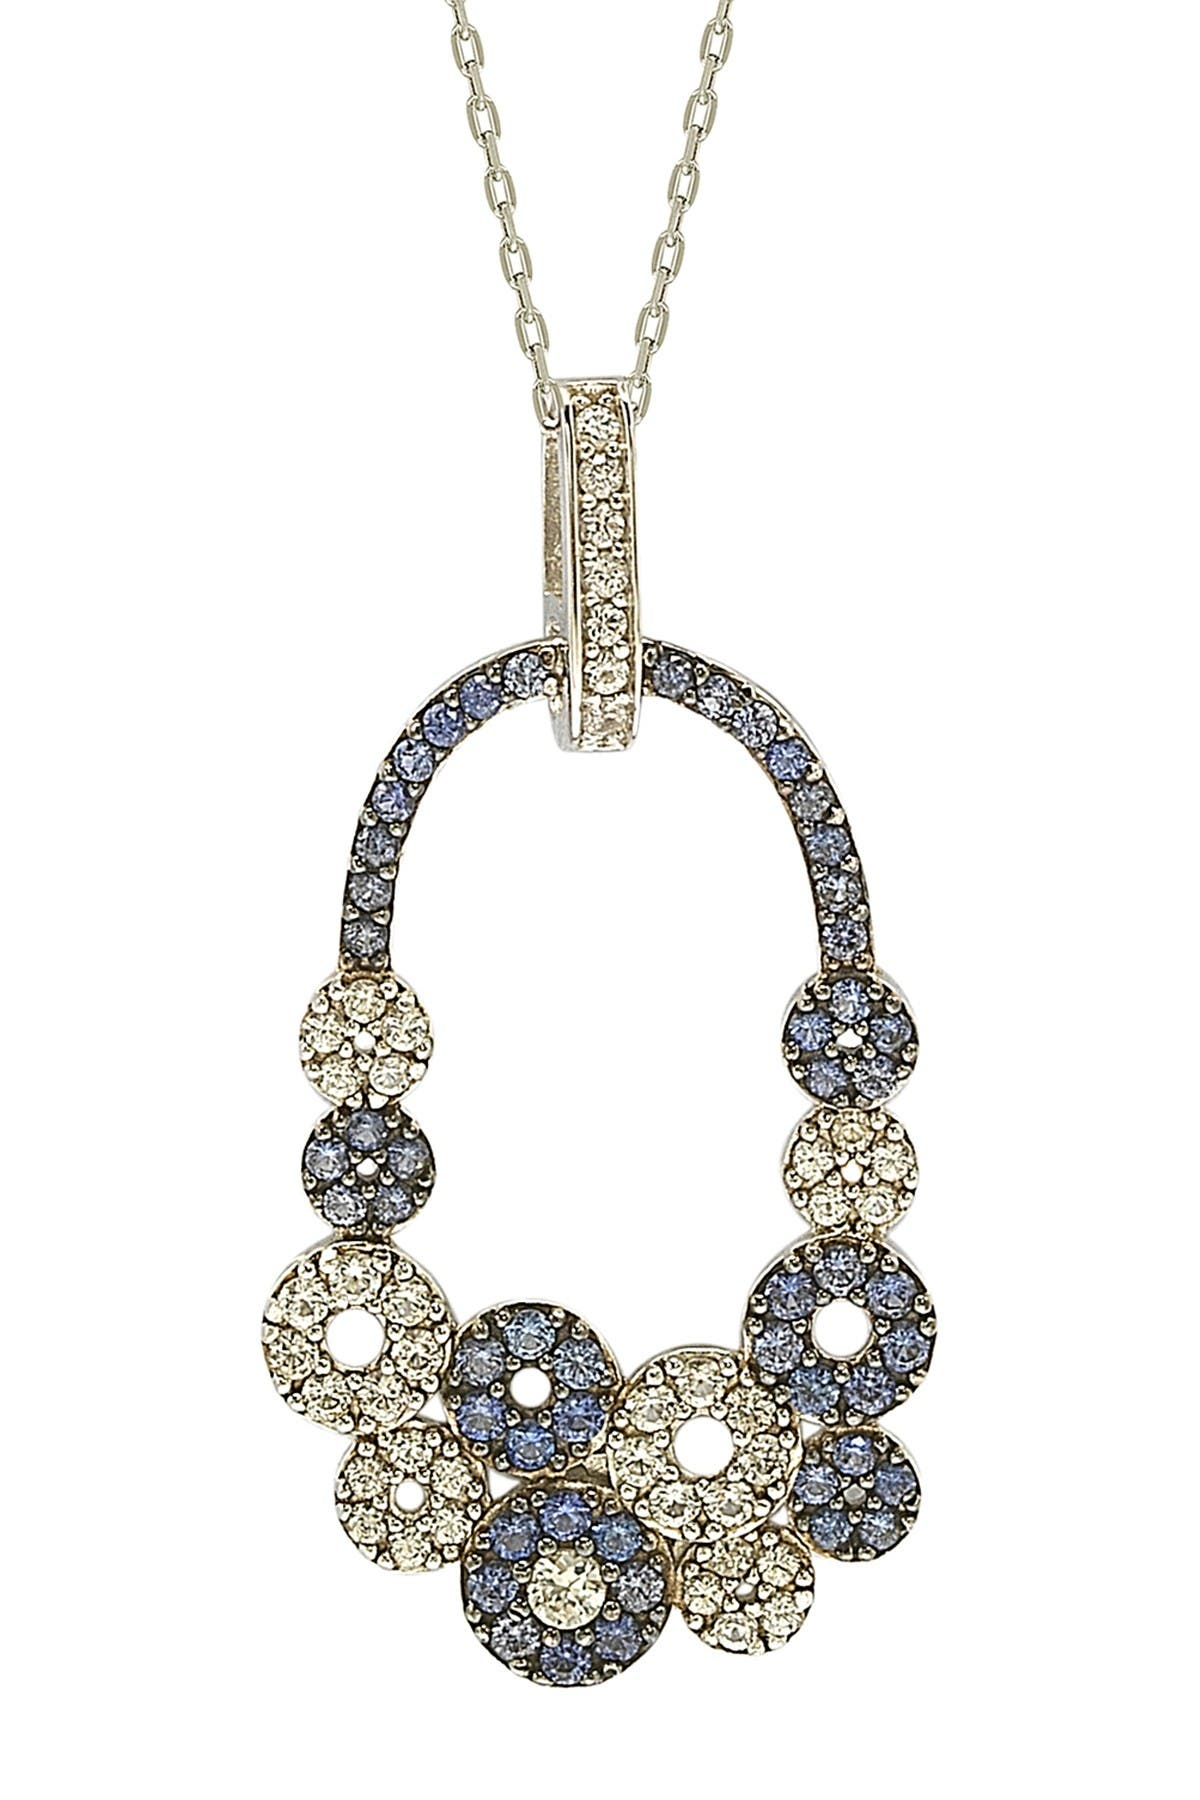 Image of Suzy Levian Sterling Silver Multi-Circle Blue Sapphire, Created White Sapphire, & Brown Diamond Pendant Necklace - 0.02 ctw